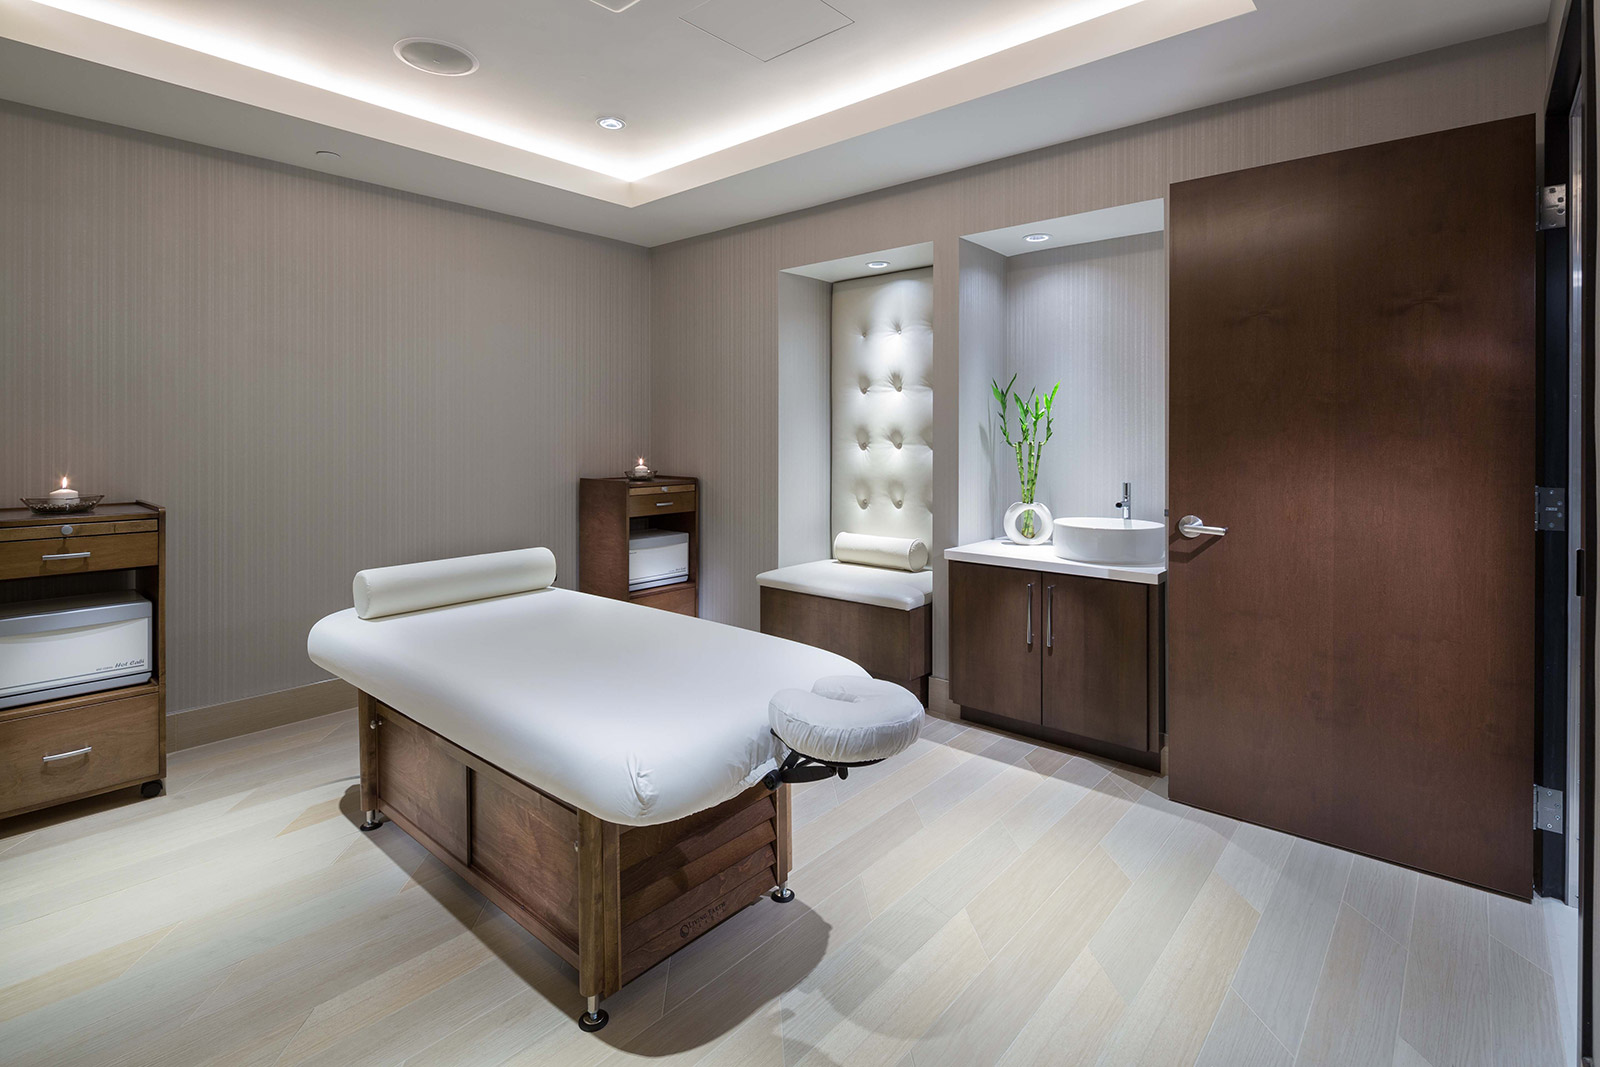 Hotel Spa Treatment Room